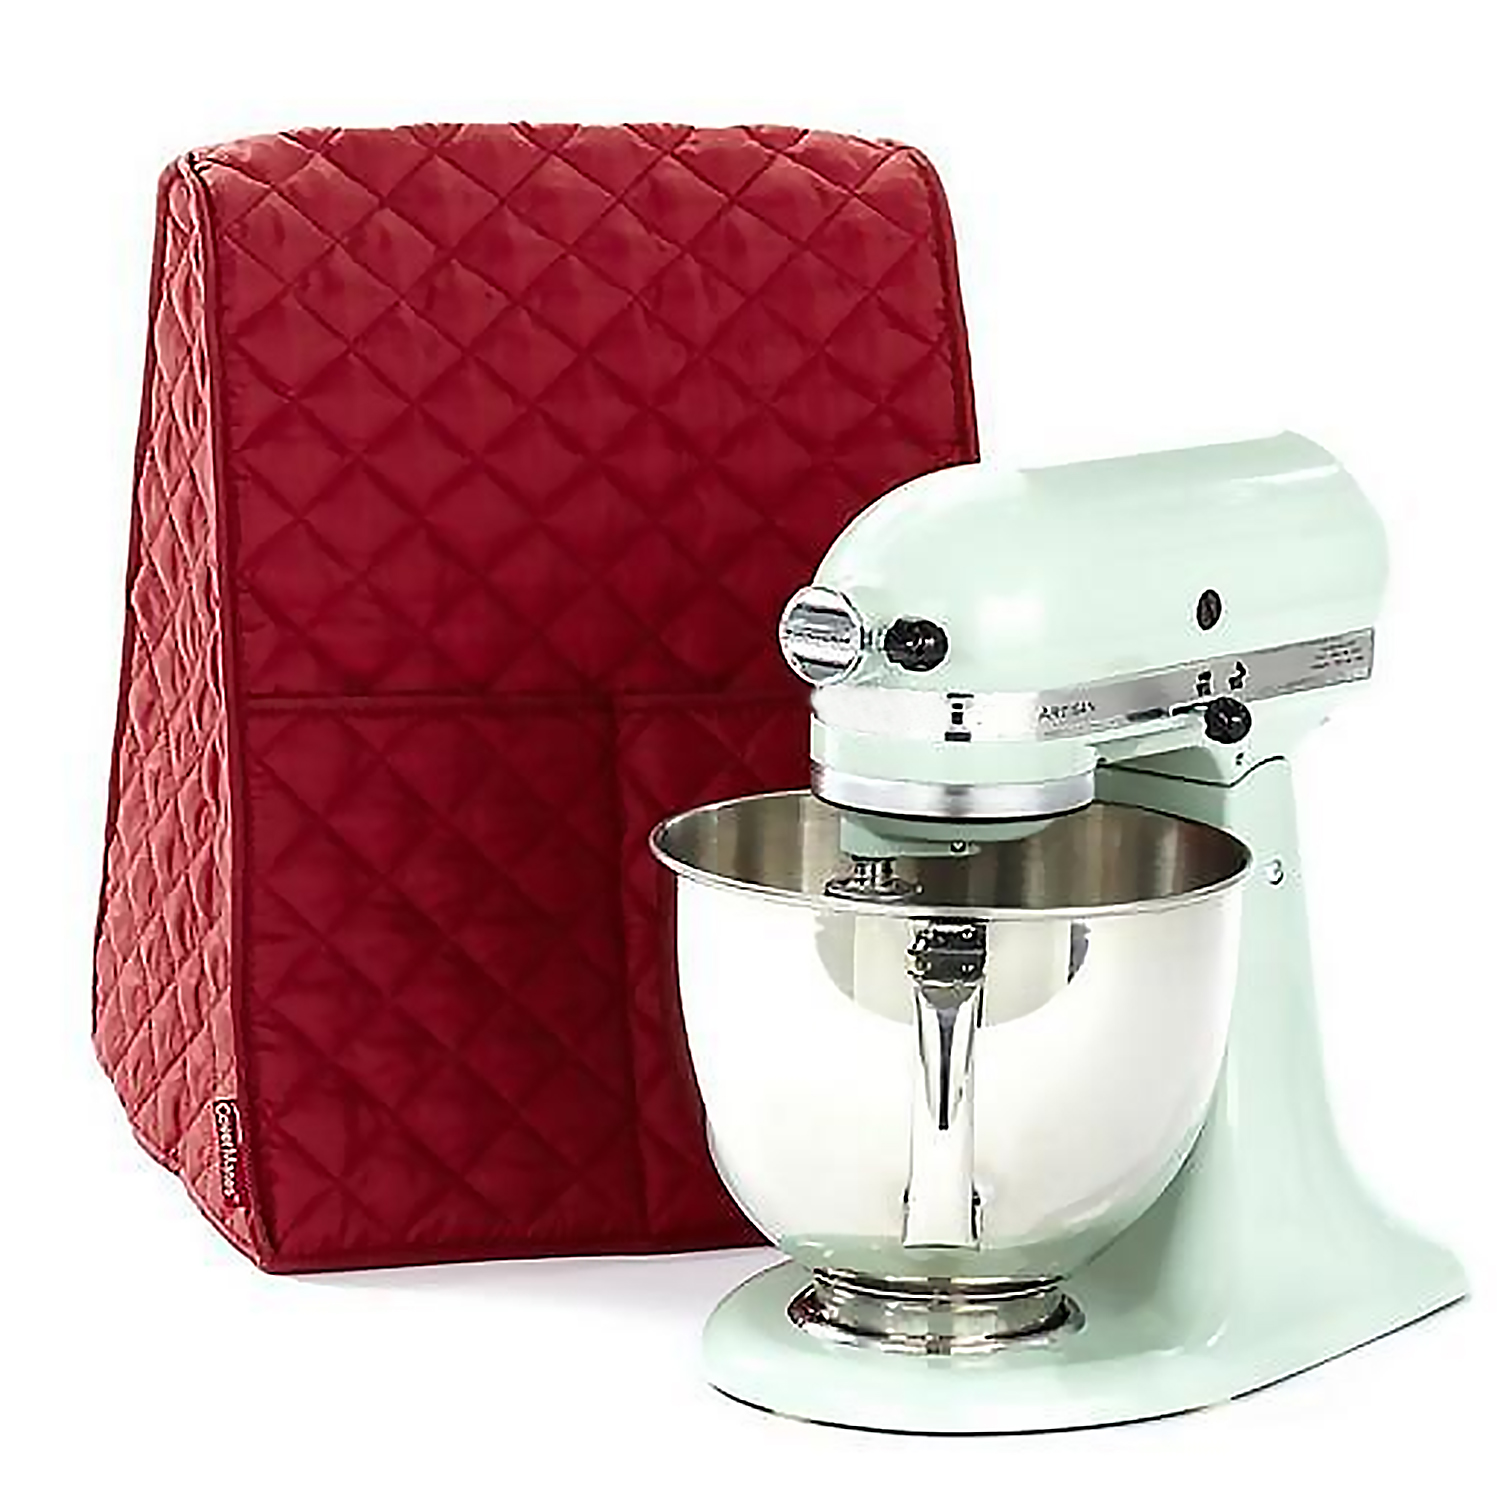 Dustproof Protective Cover With 2 Front Pockets For Kitchenaid Stand Mixer Home Apartment Restaurant Office